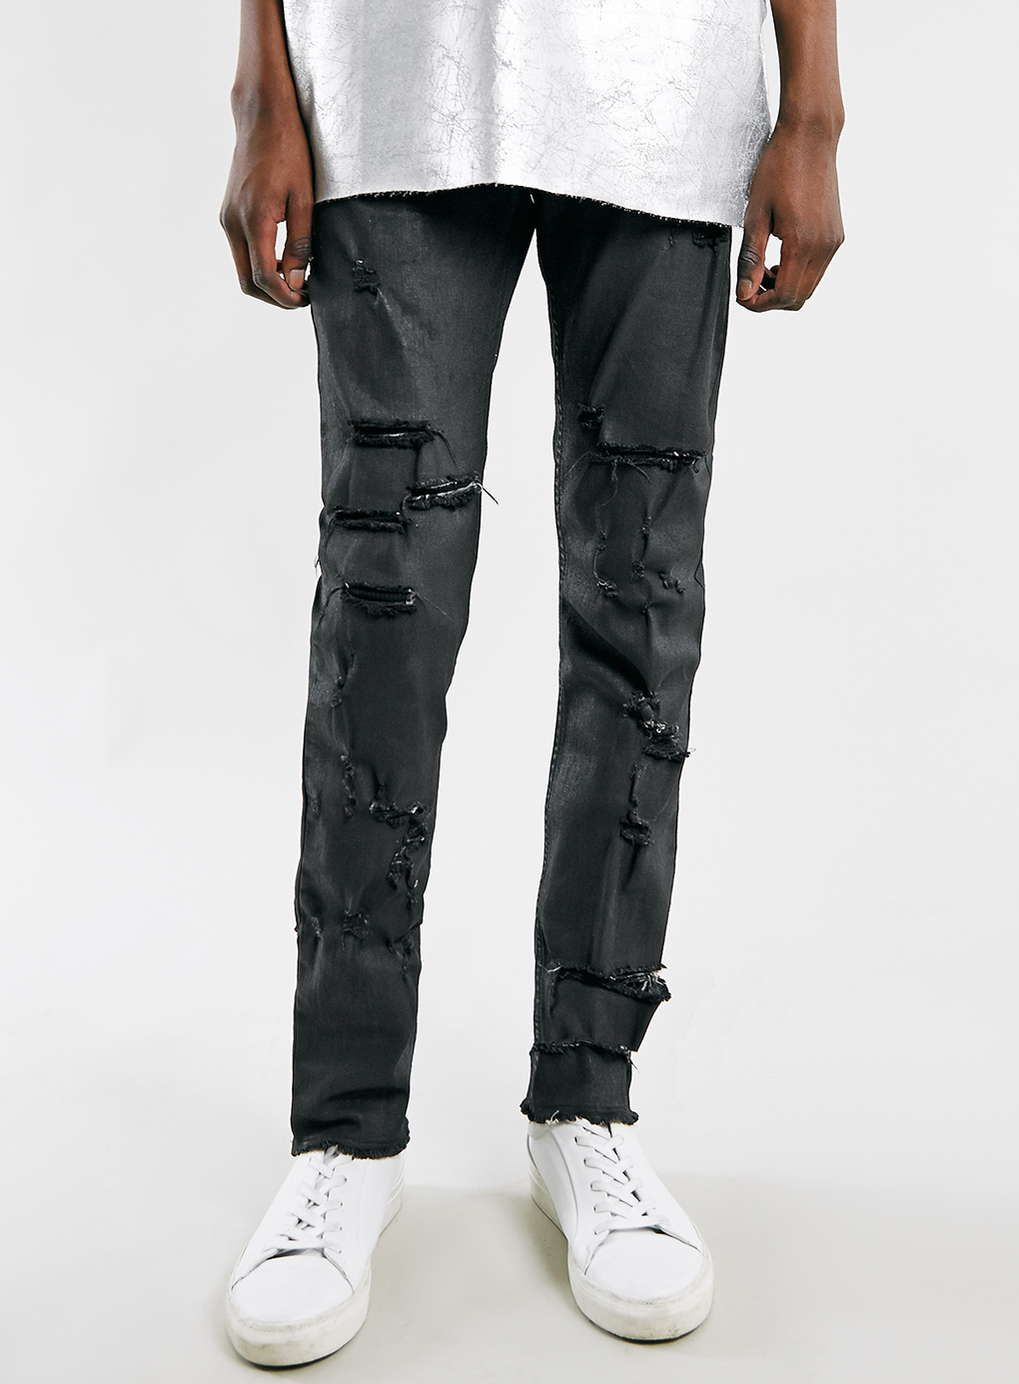 AAA Black Coated Rip Jeans - Topman AAA - Clothing. Skinny Fit ...